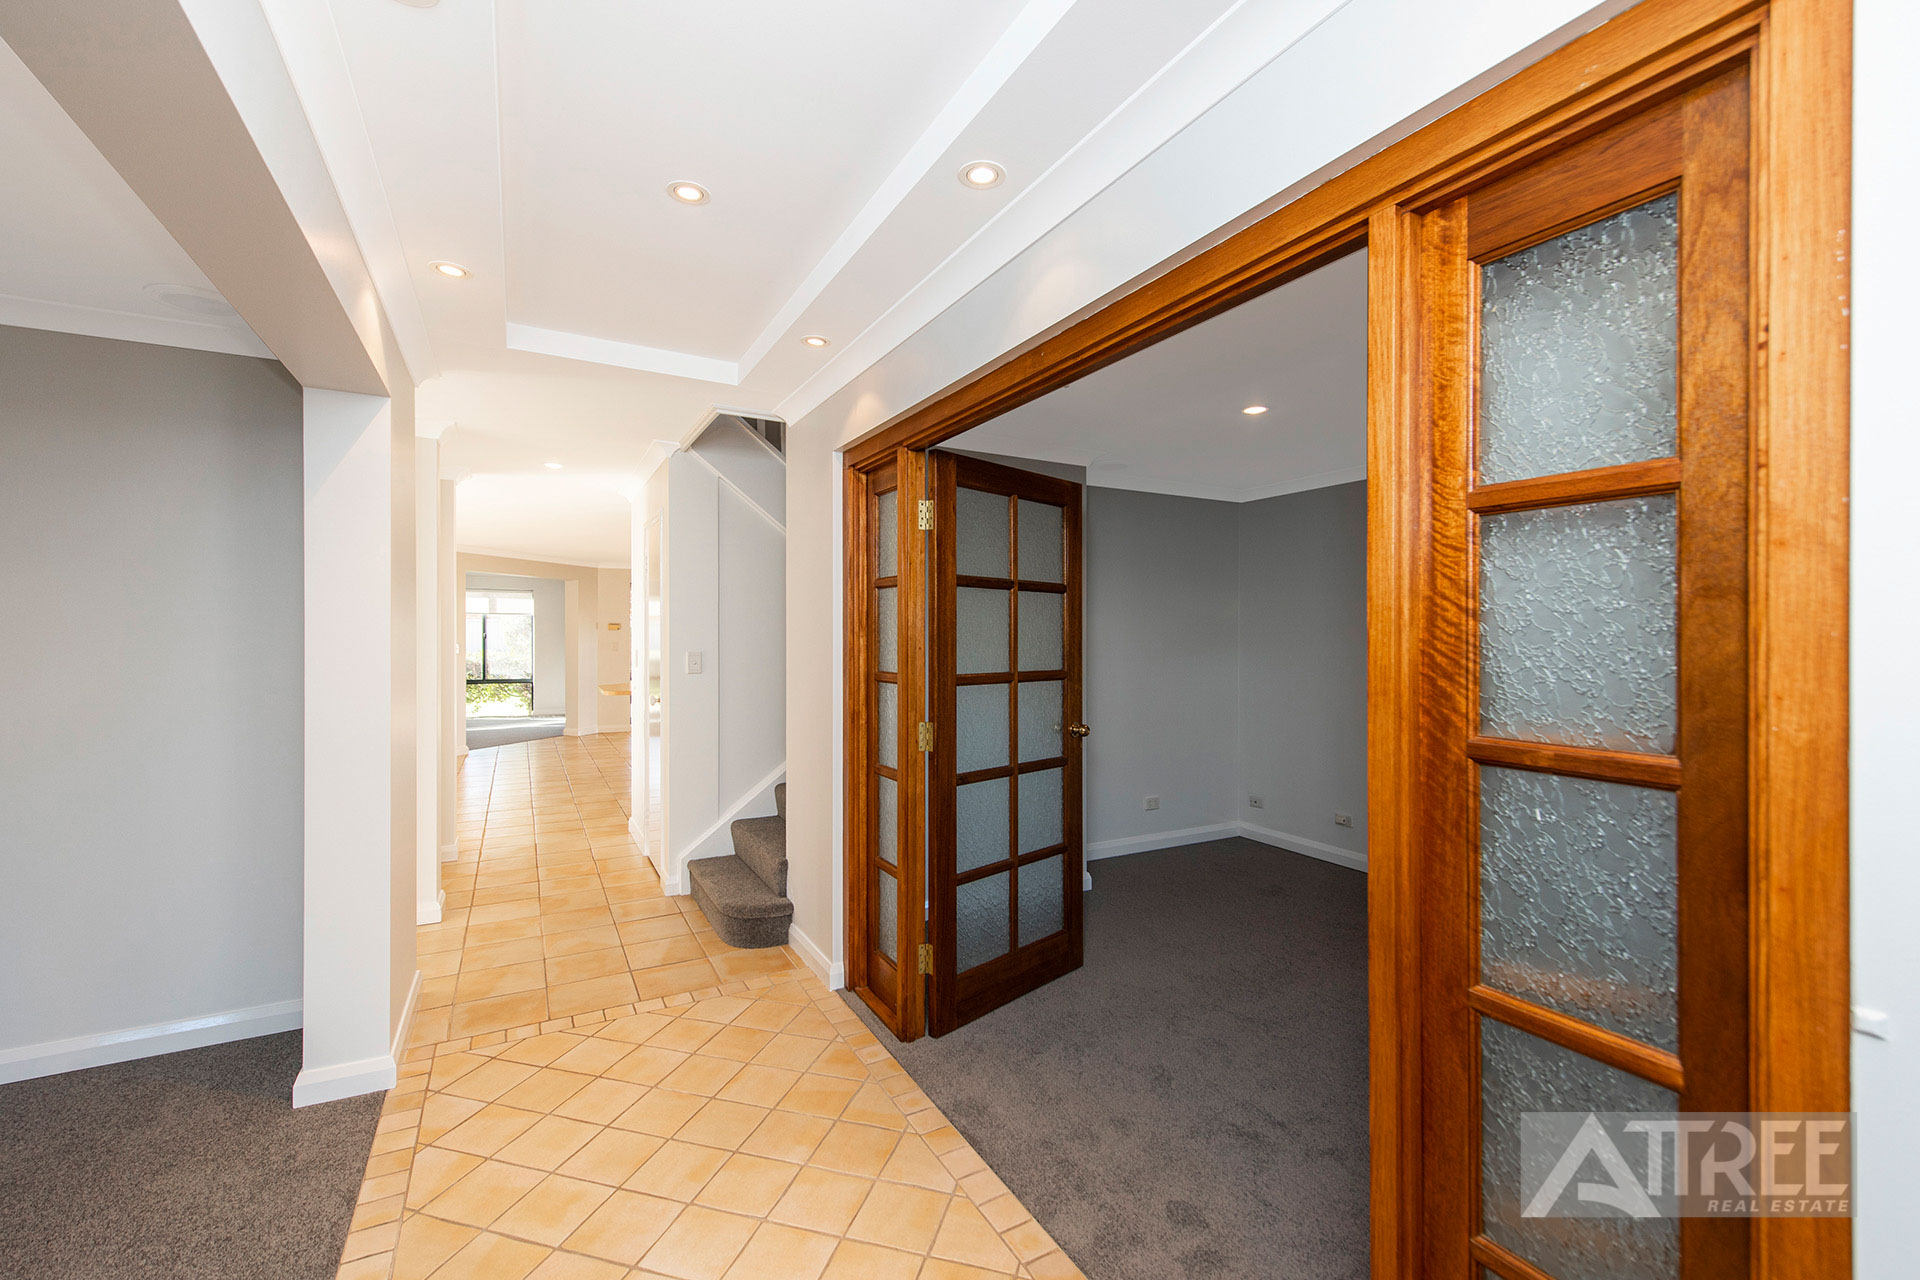 Property for sale in CANNING VALE, 1 Roebuck Avenue : Attree Real Estate